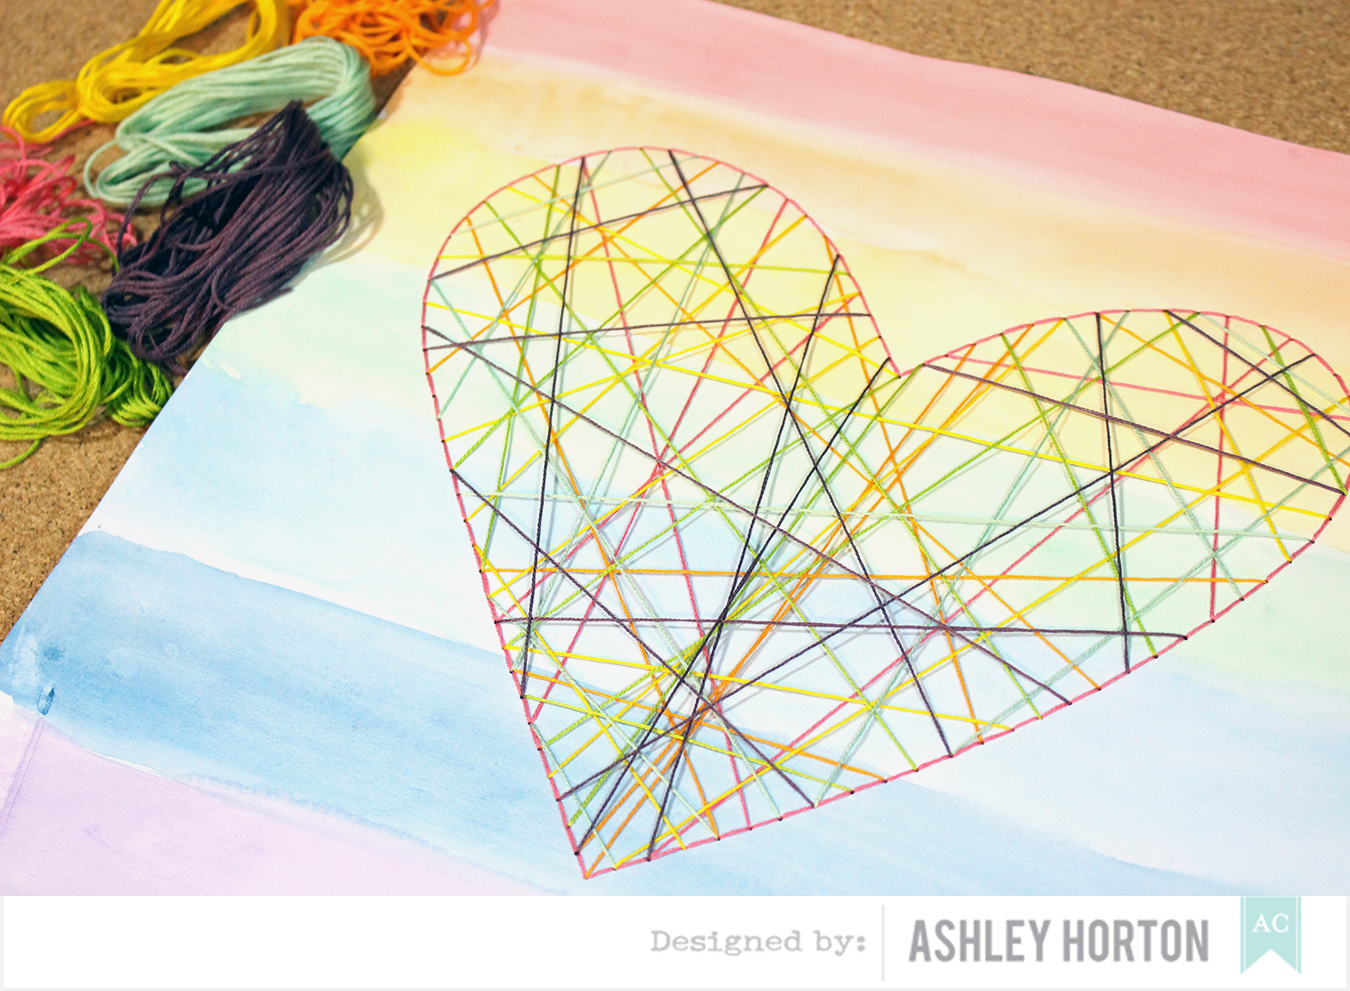 American Crafts Studio Blog: Watercoloring Wall Decor Tutorial by ...